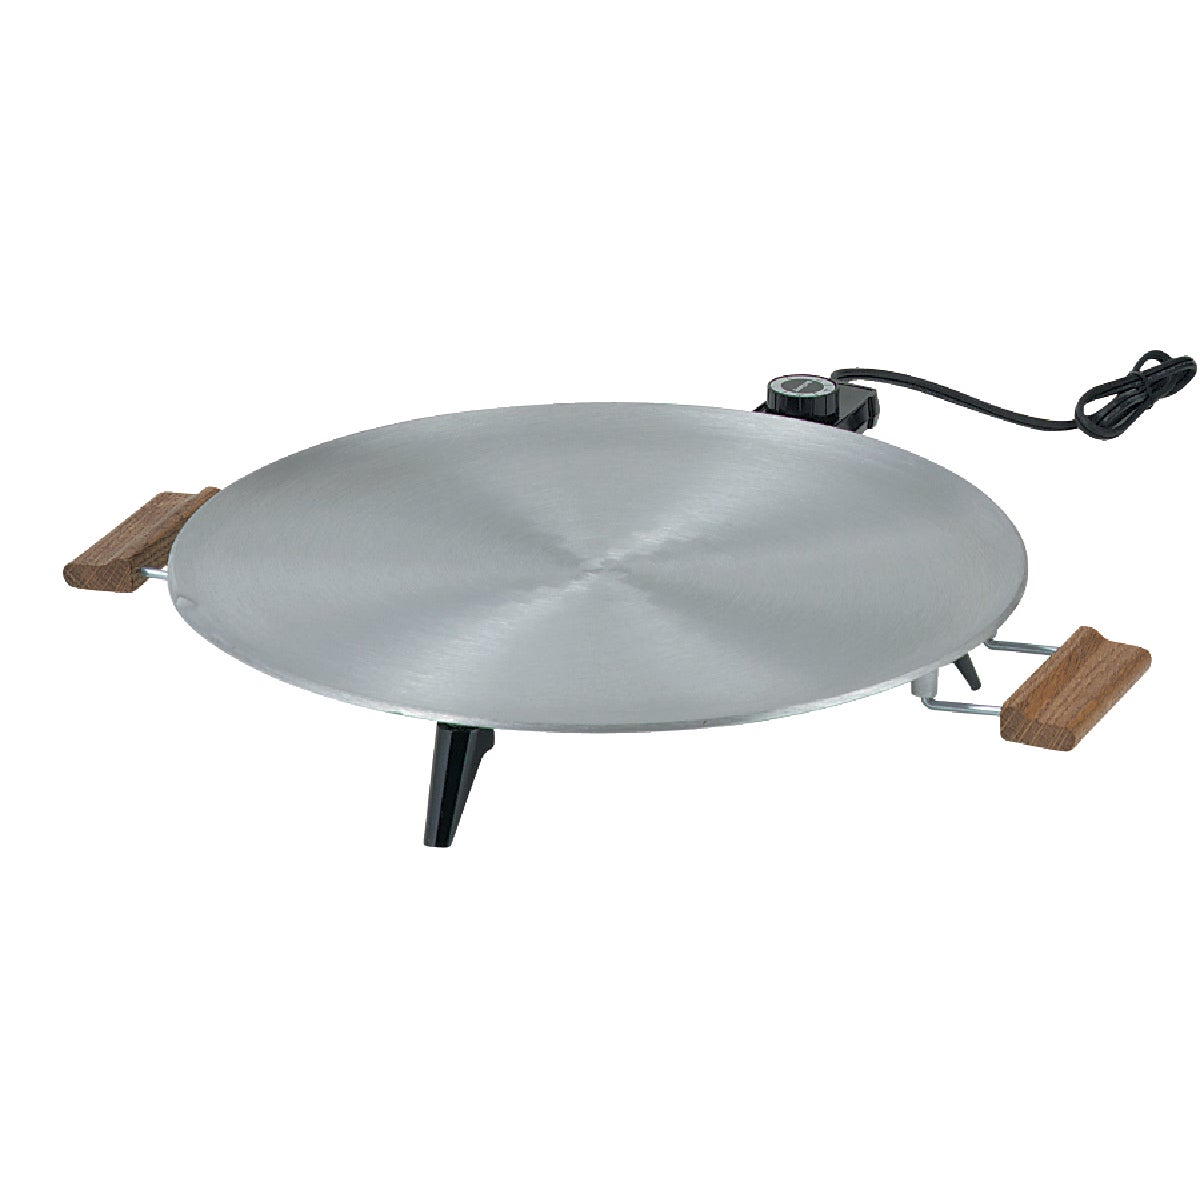 ALUMINUM LEFSE GRILL - 730 by Bethany Housewares